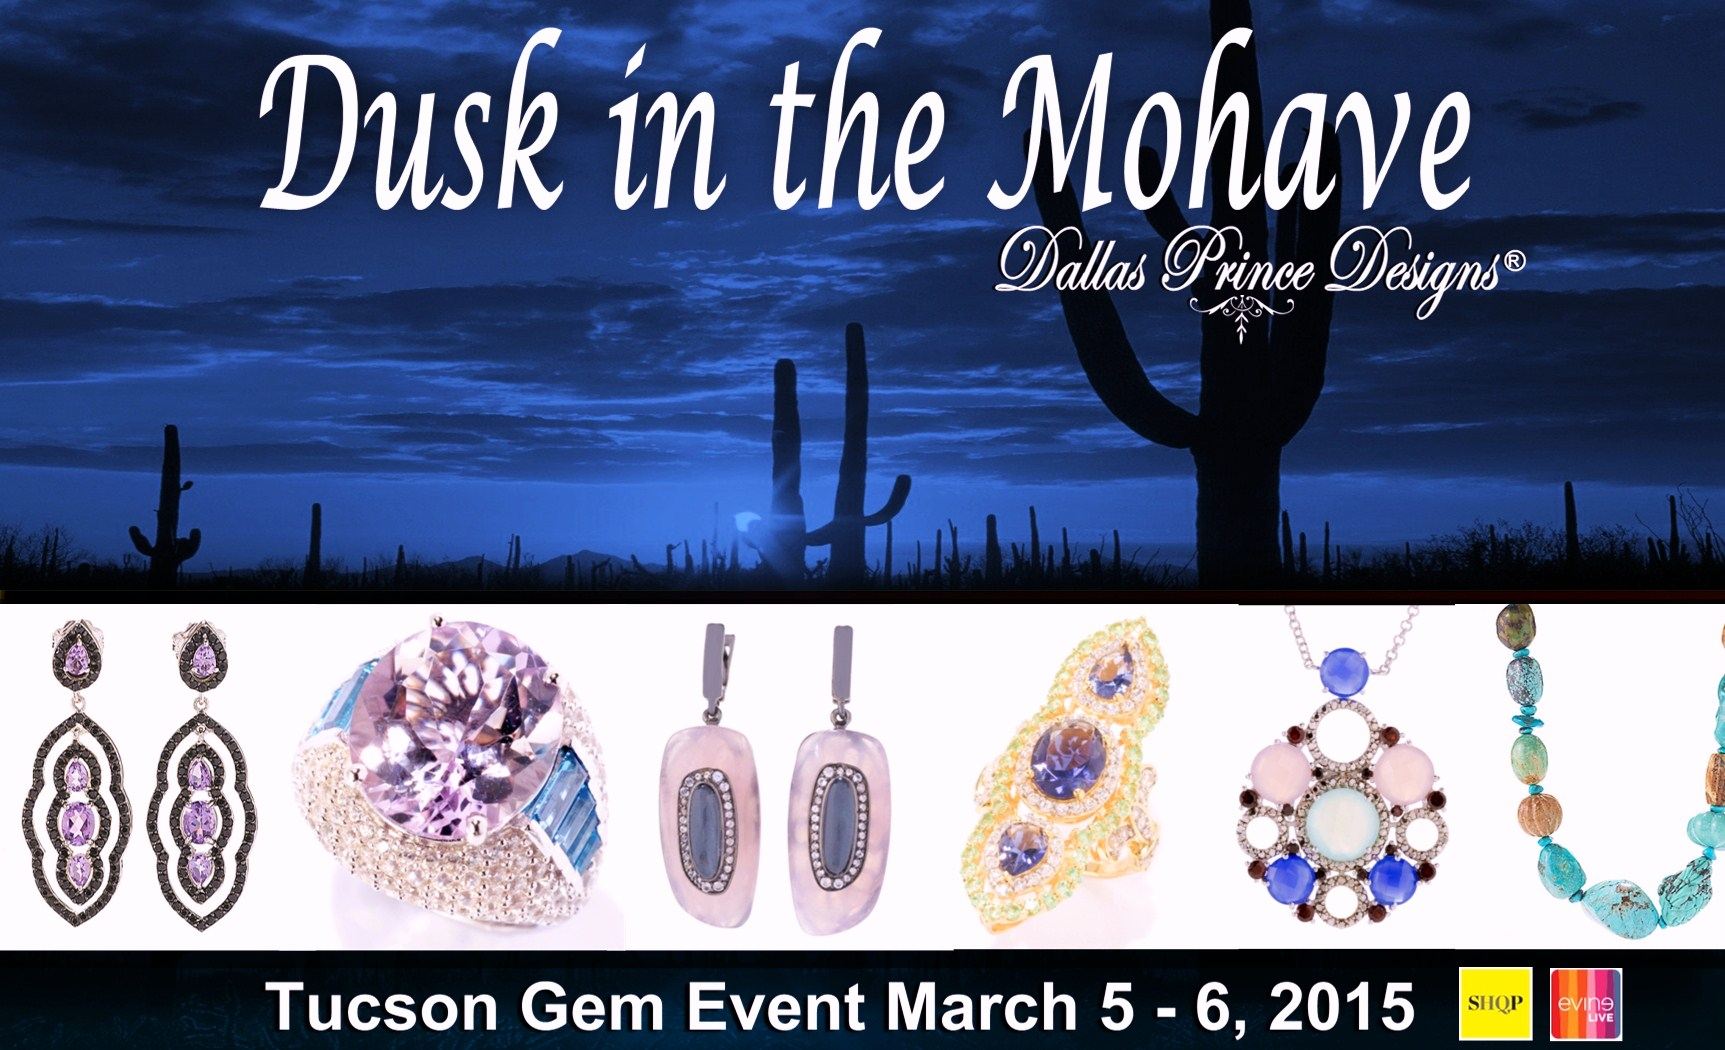 tucson 2015 dallas prince designs tucson 2015 dallas prince designs